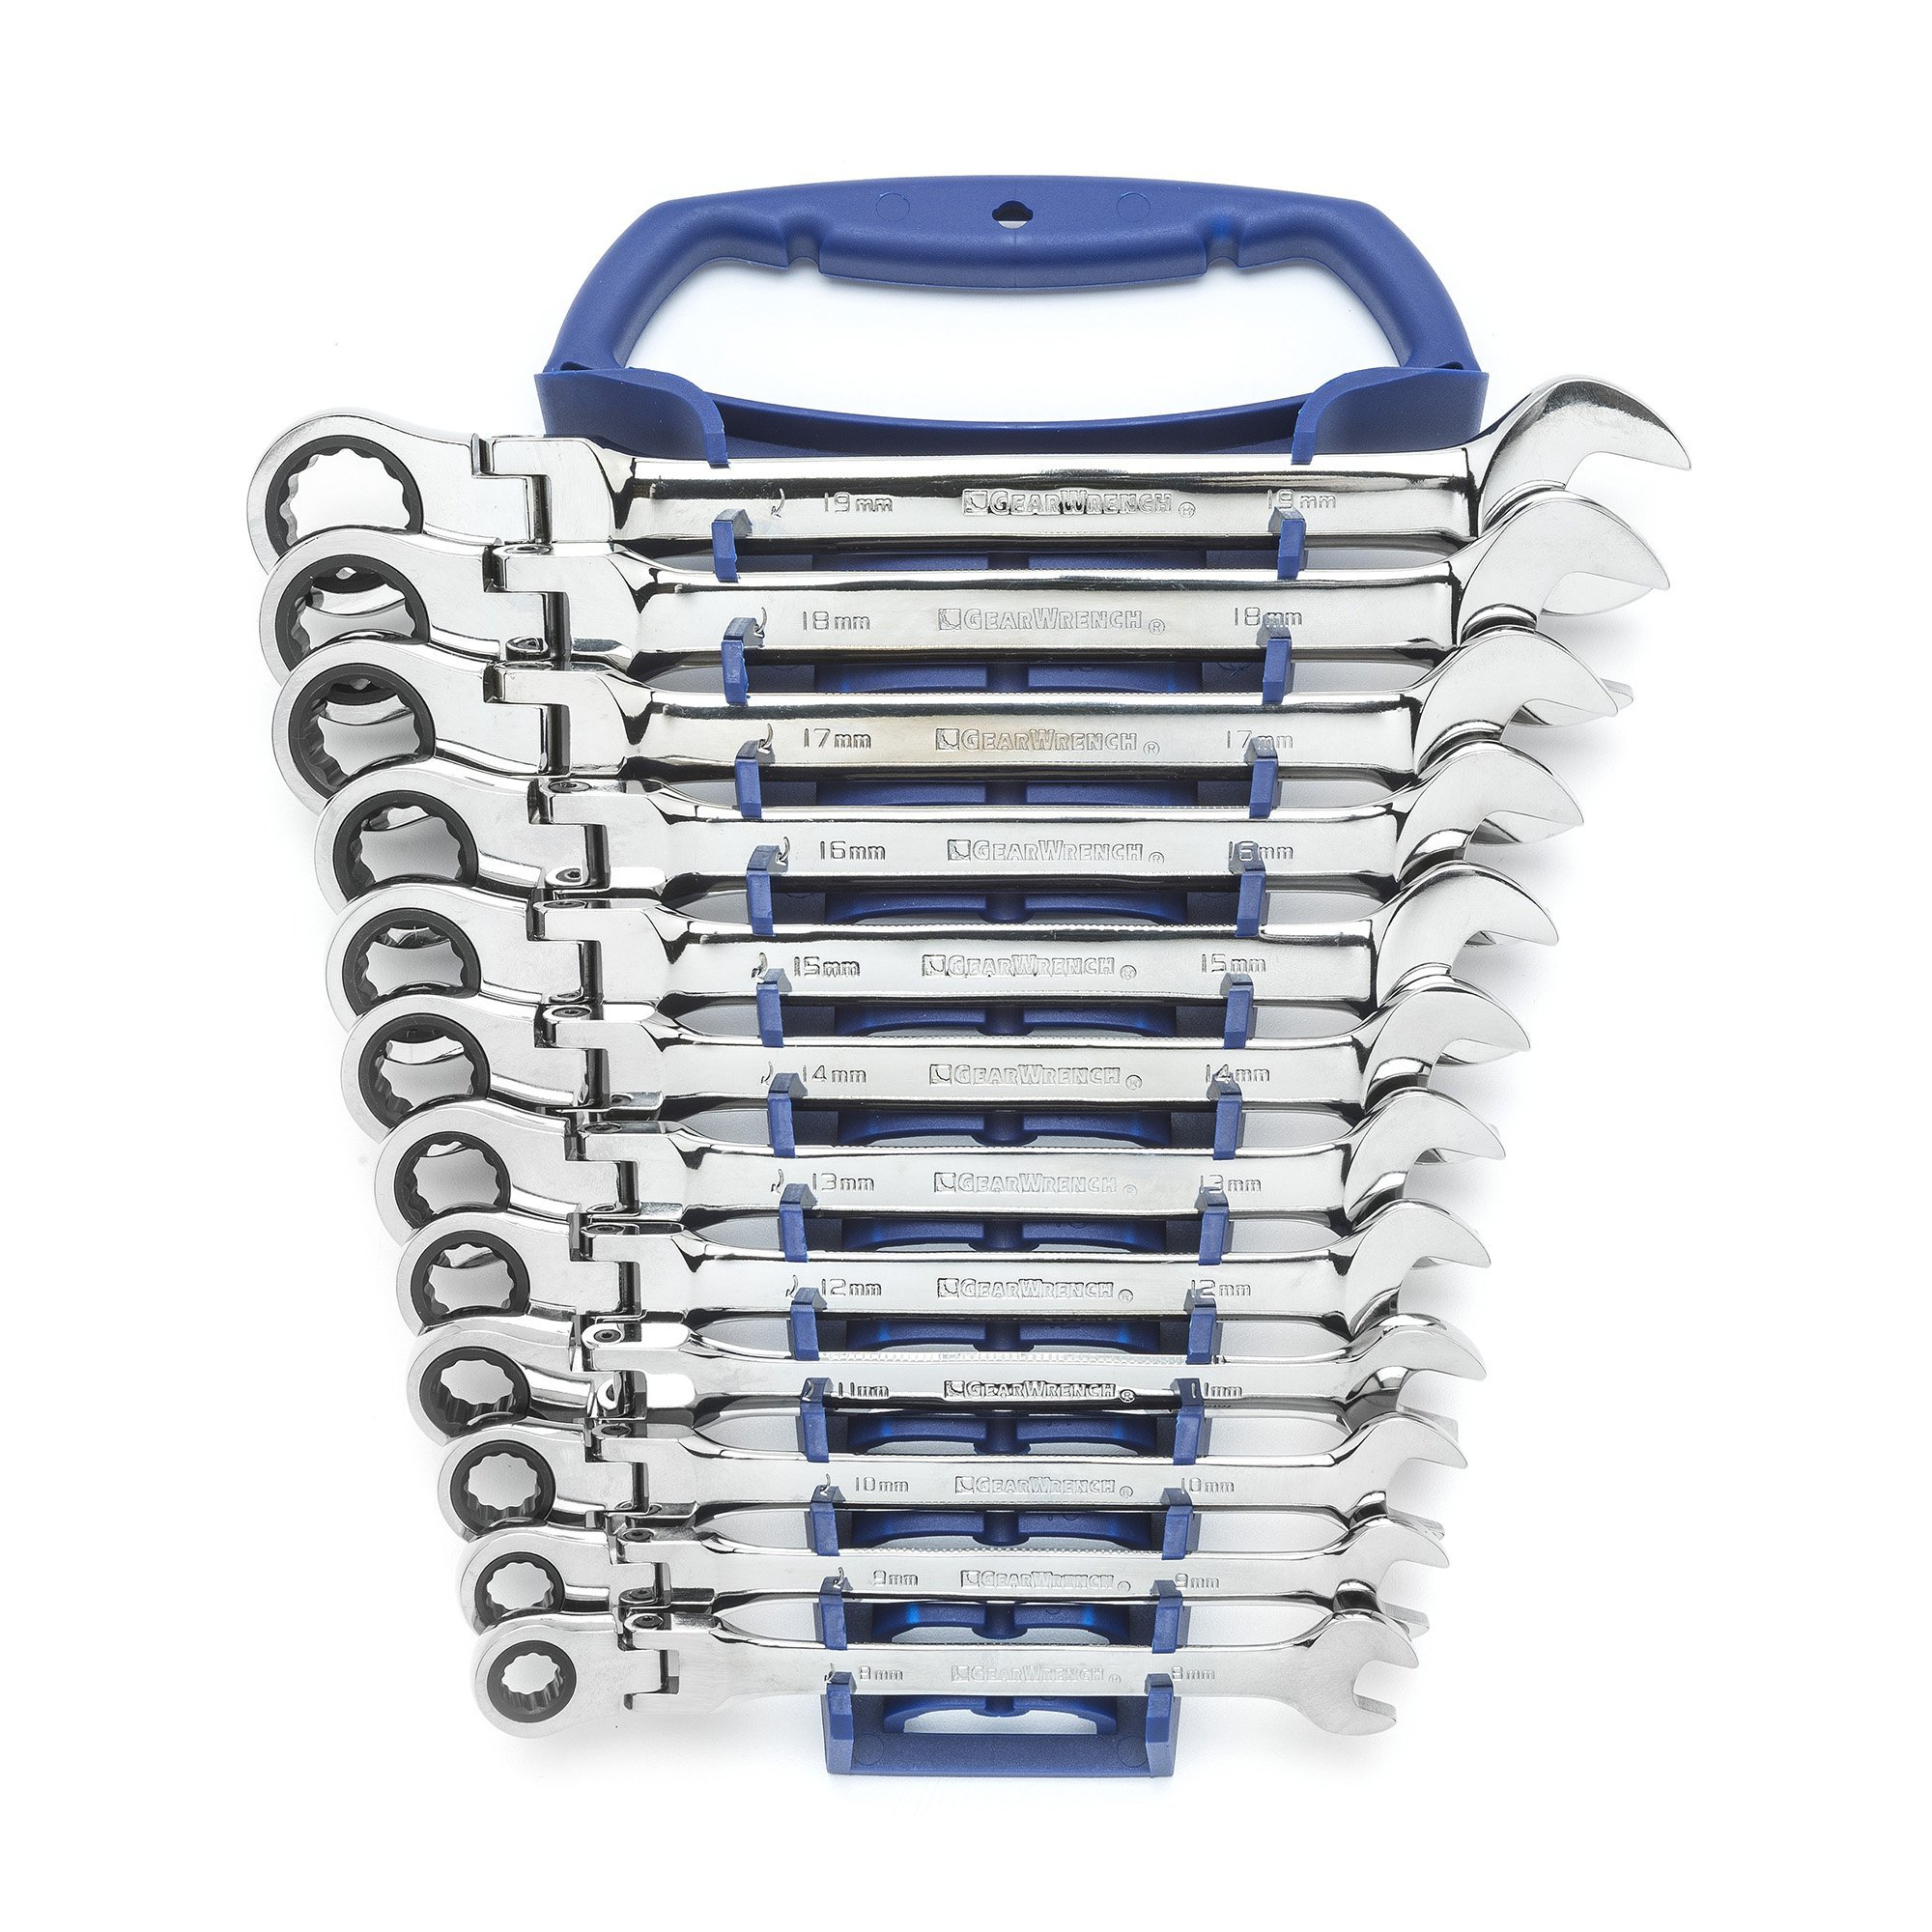 GEARWRENCH 12 Pc. 12 Point Flex Head Ratcheting Combination Metric Wrench Set - 9901D by GearWrench